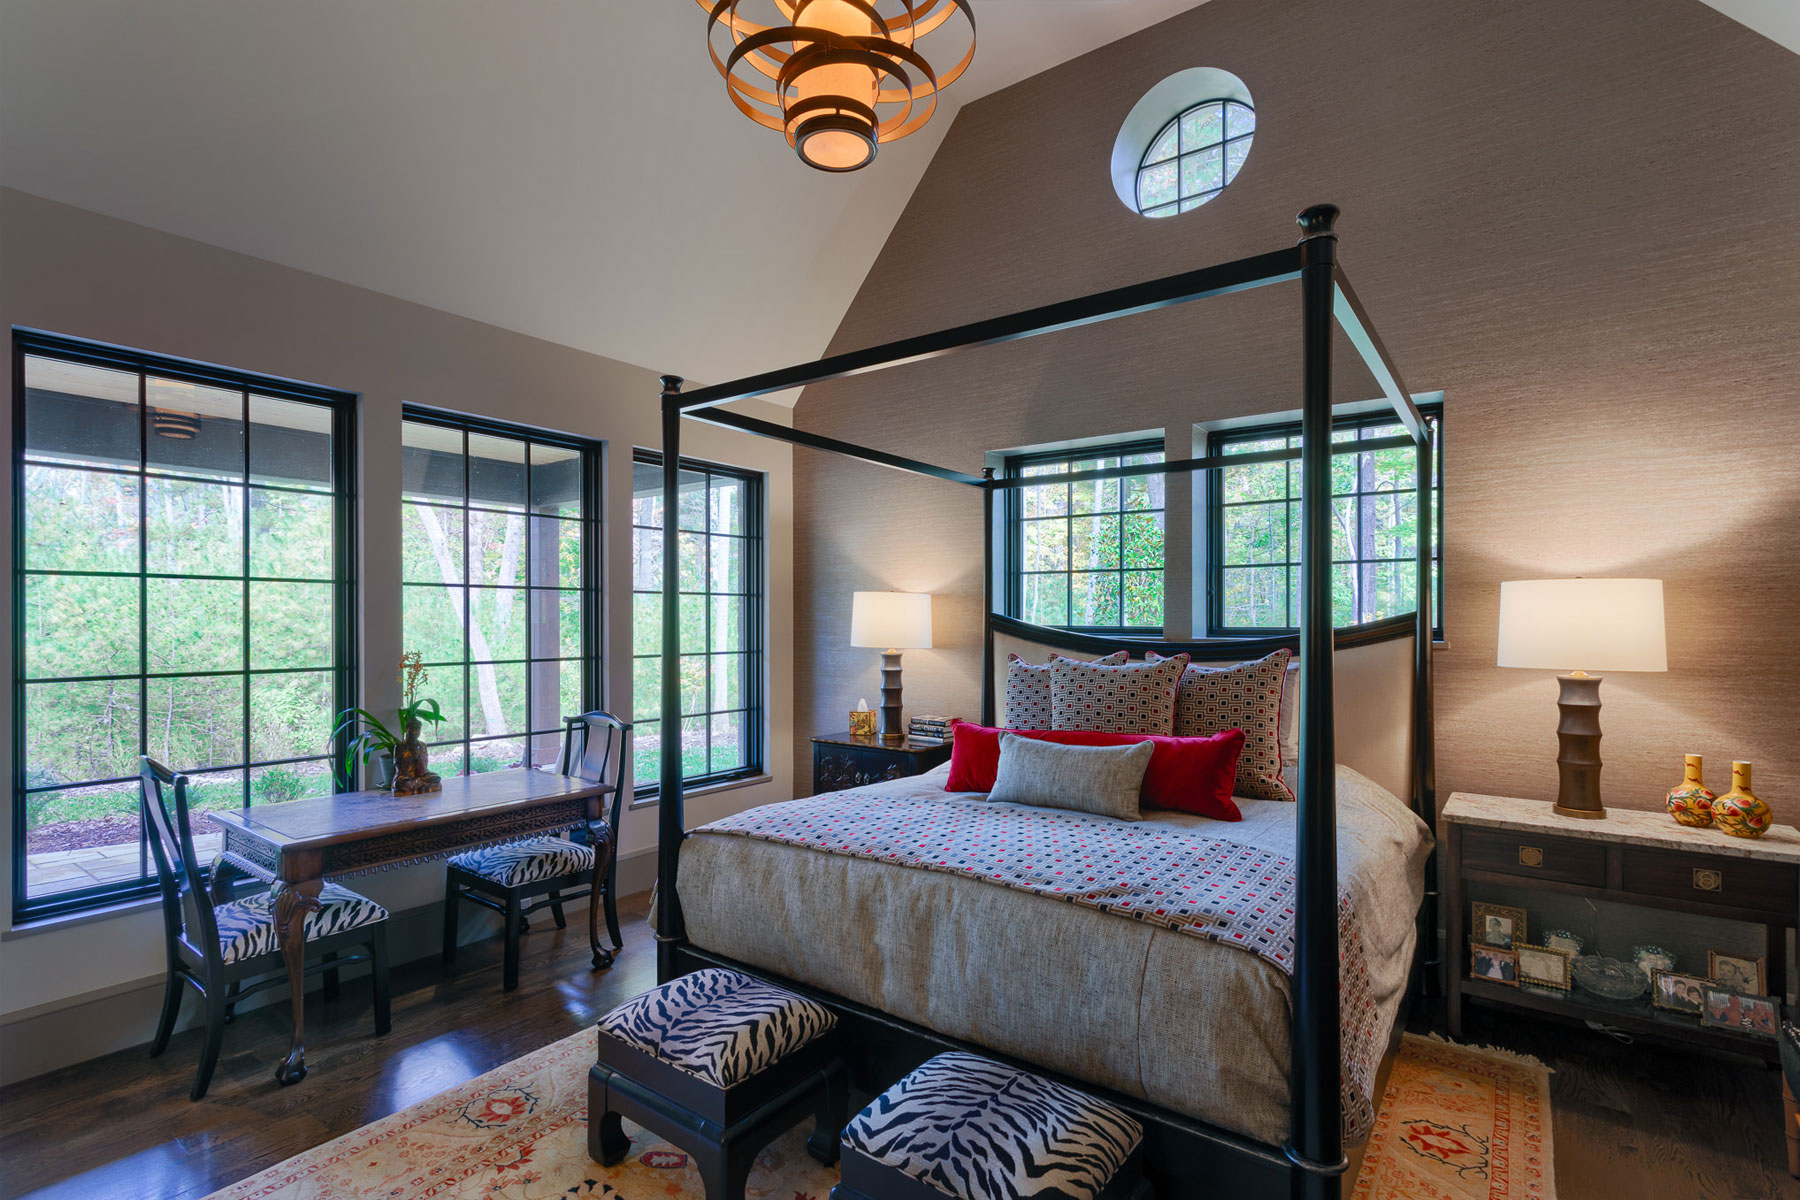 Second master suite with pitched ceiling on lower level of moutain home